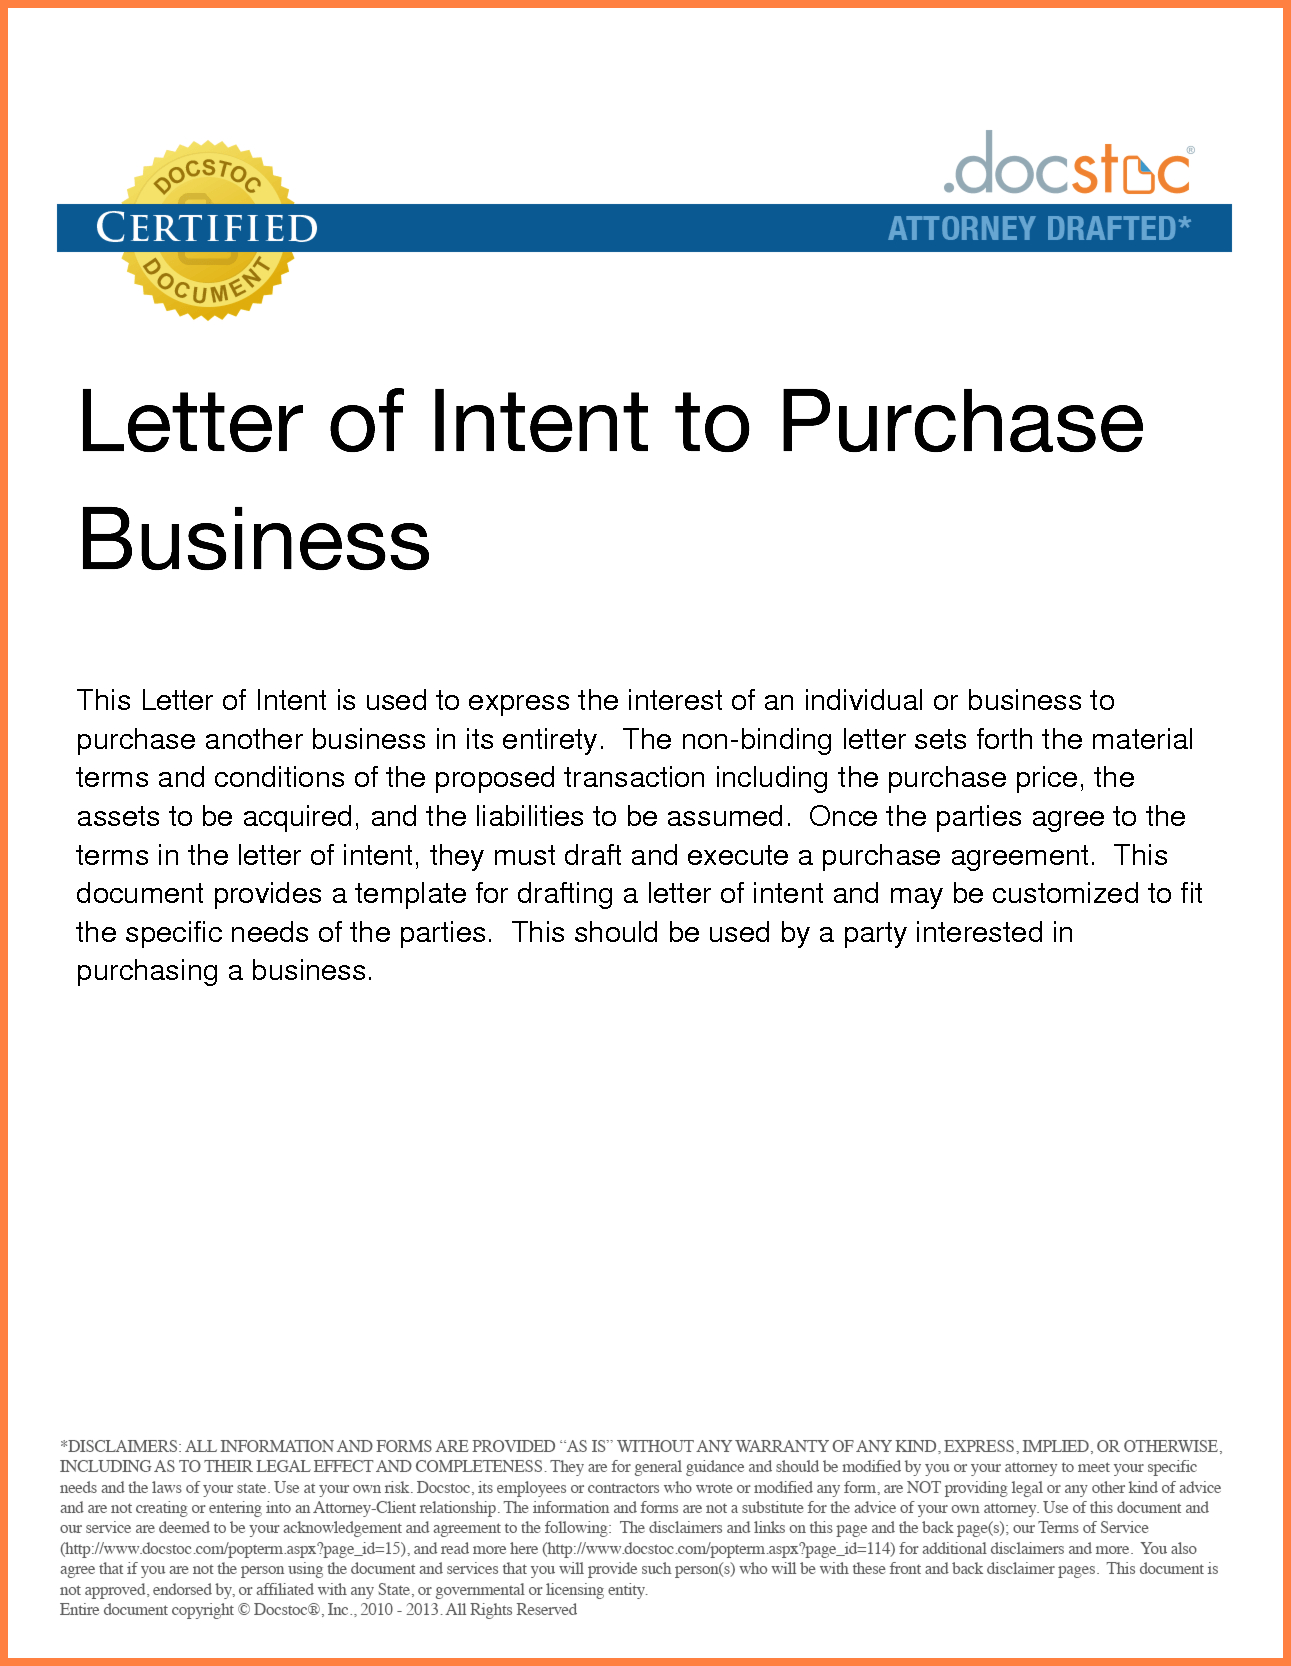 Letter Of Intent to Purchase Business Template - Sampletter Intent to Franchise Business Purchase Small Buy Sample